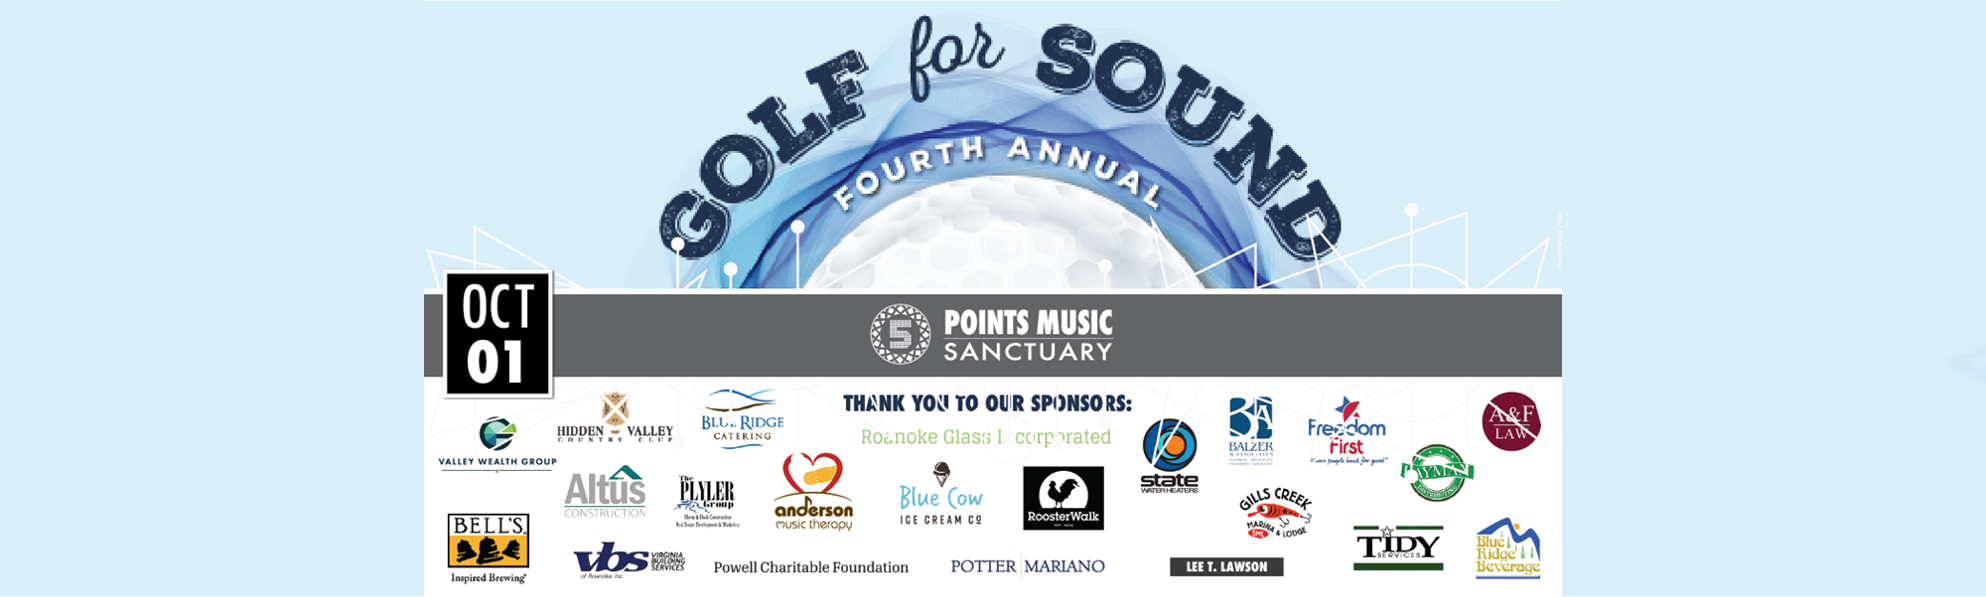 4th Annual Golf for Sound Tournament   Oct 1